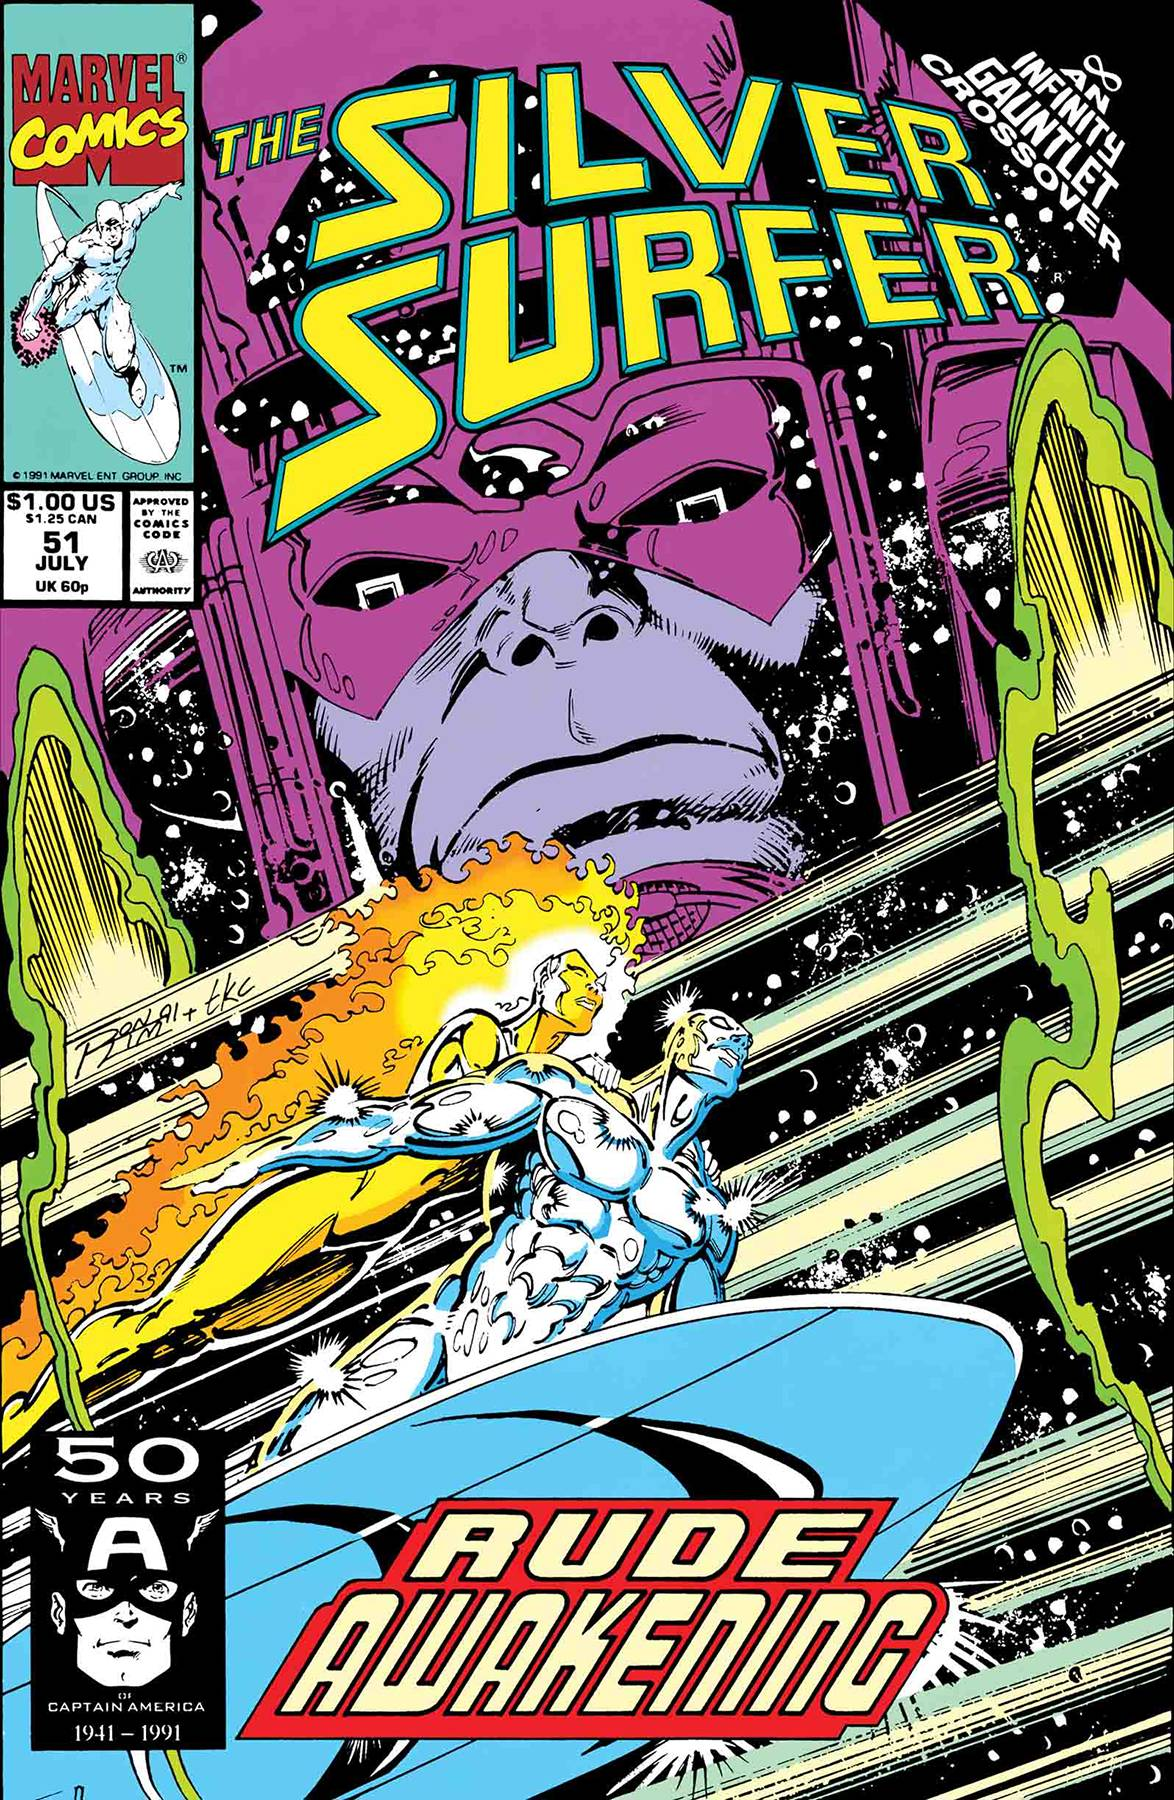 TRUE BELIEVERS SILVER SURFER RUDE AWAKENING 1.jpg